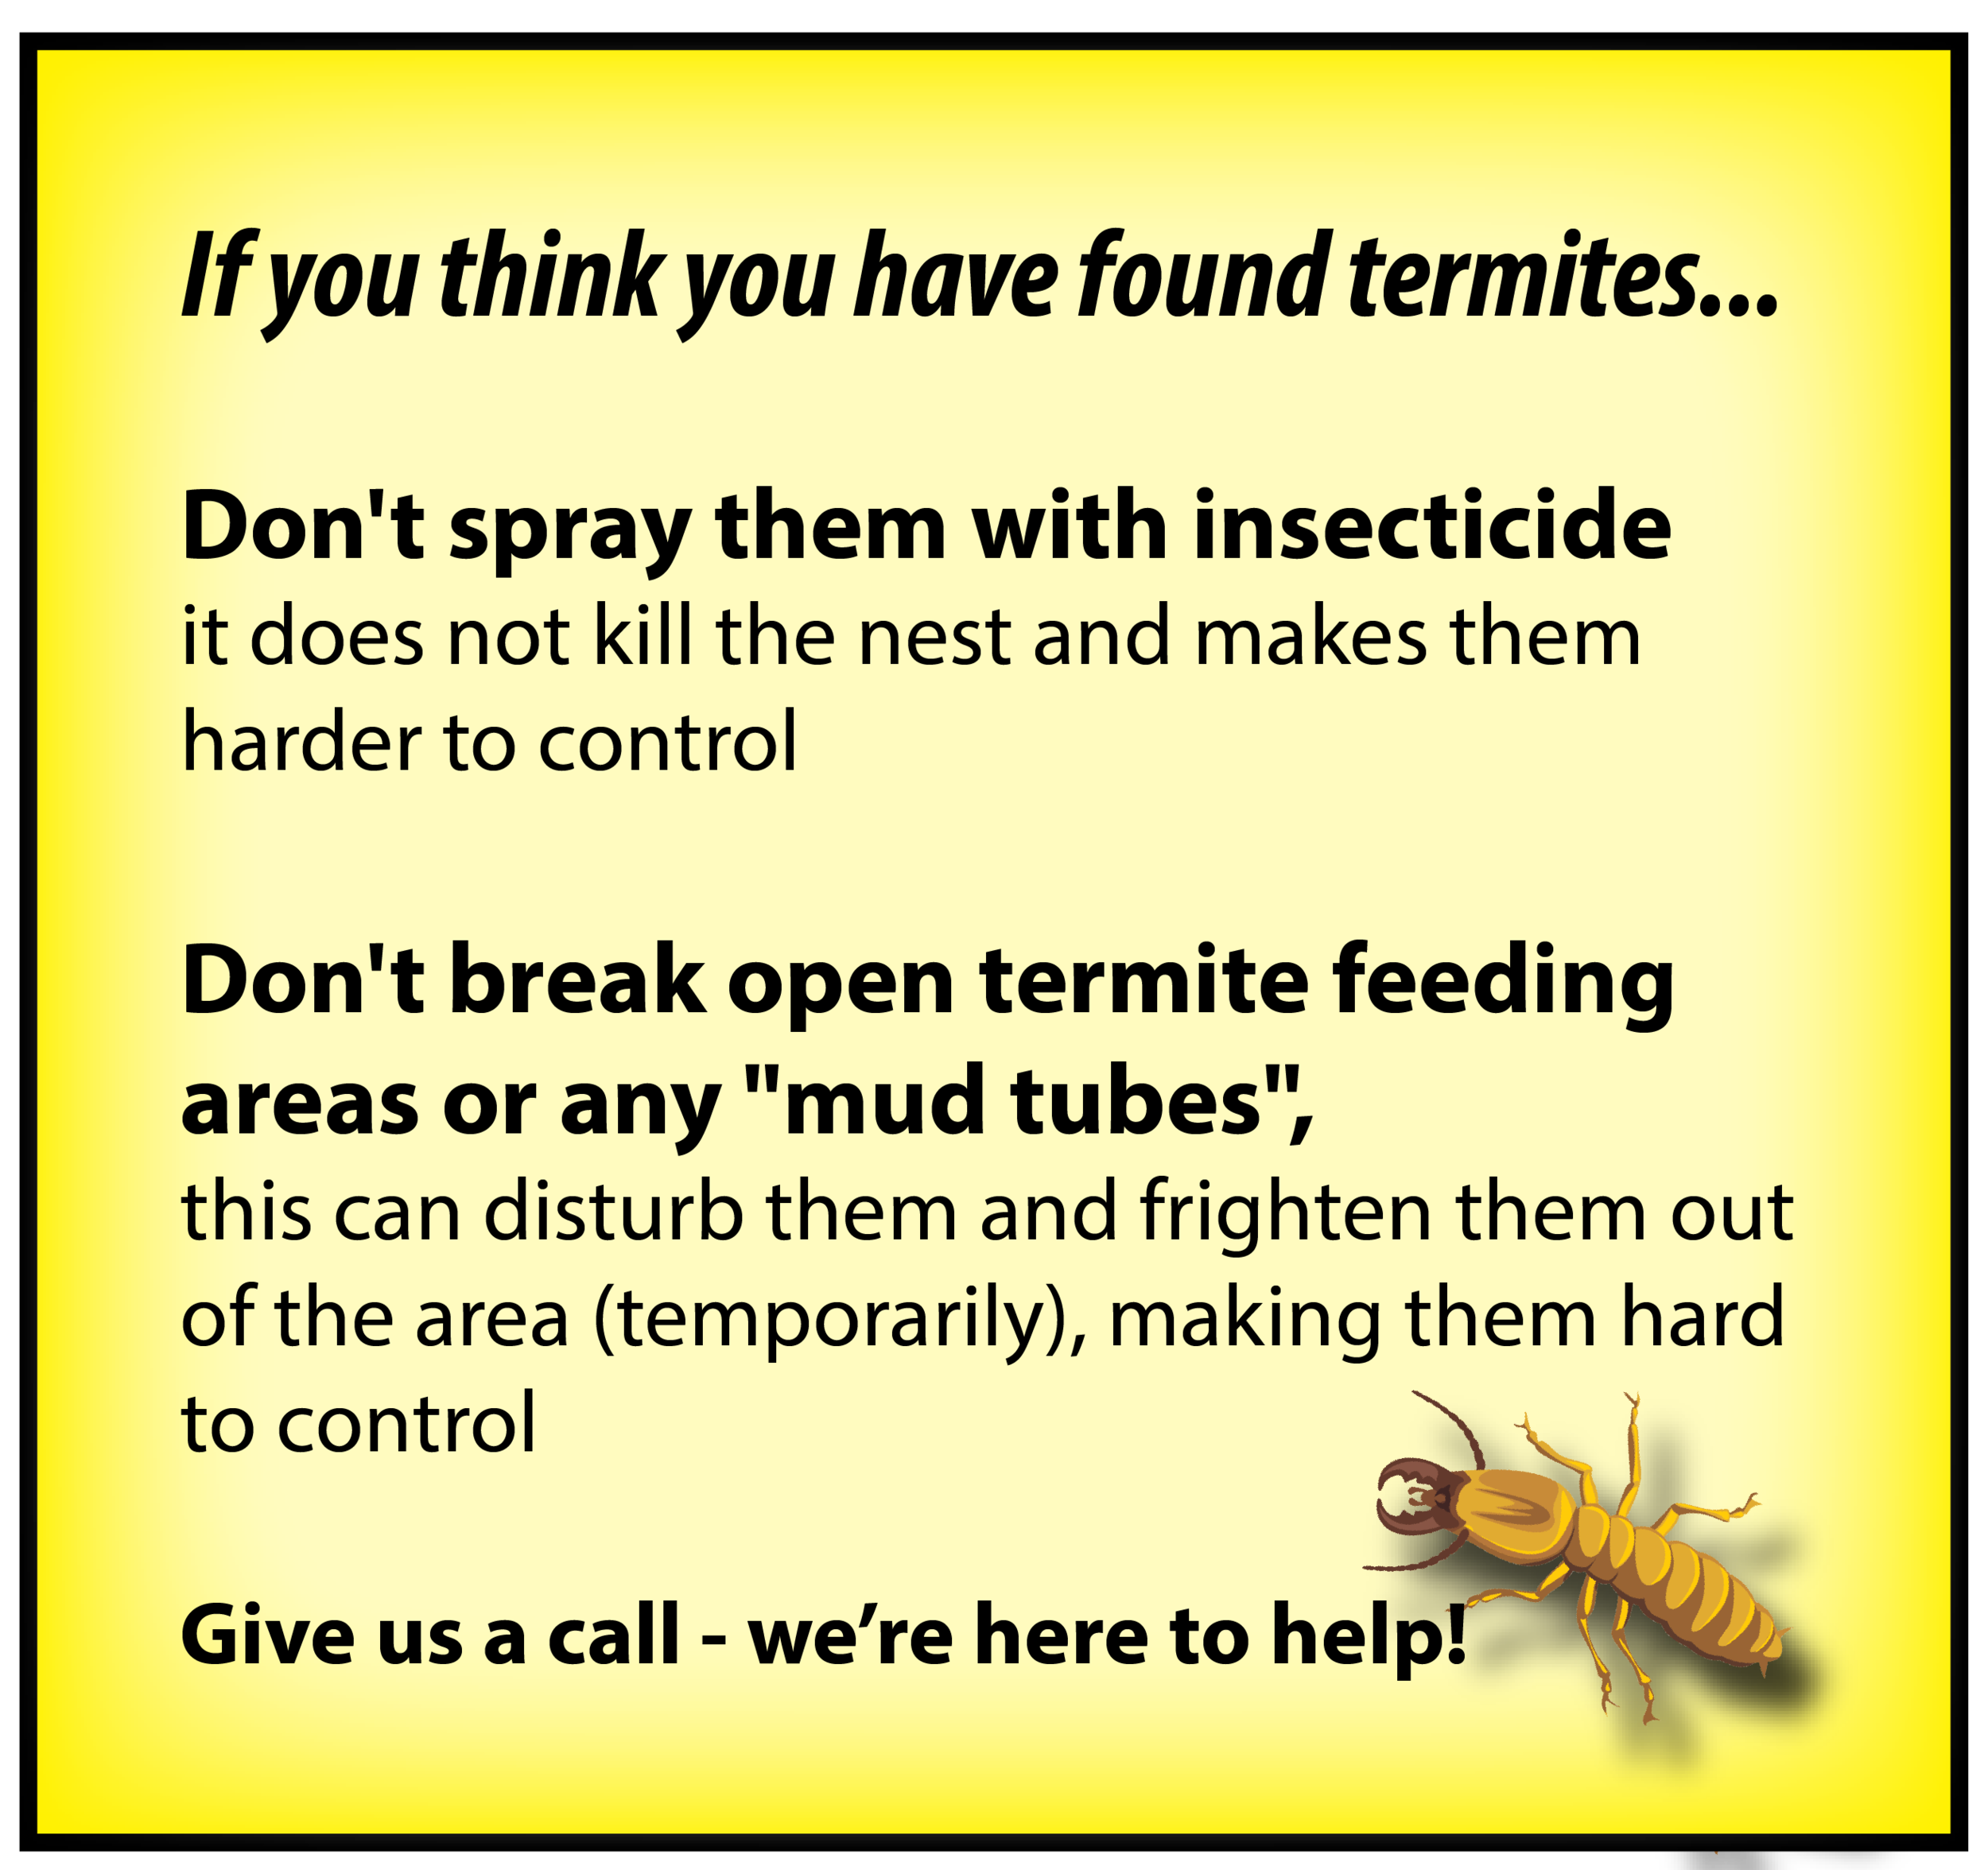 Found termites - here's what to do